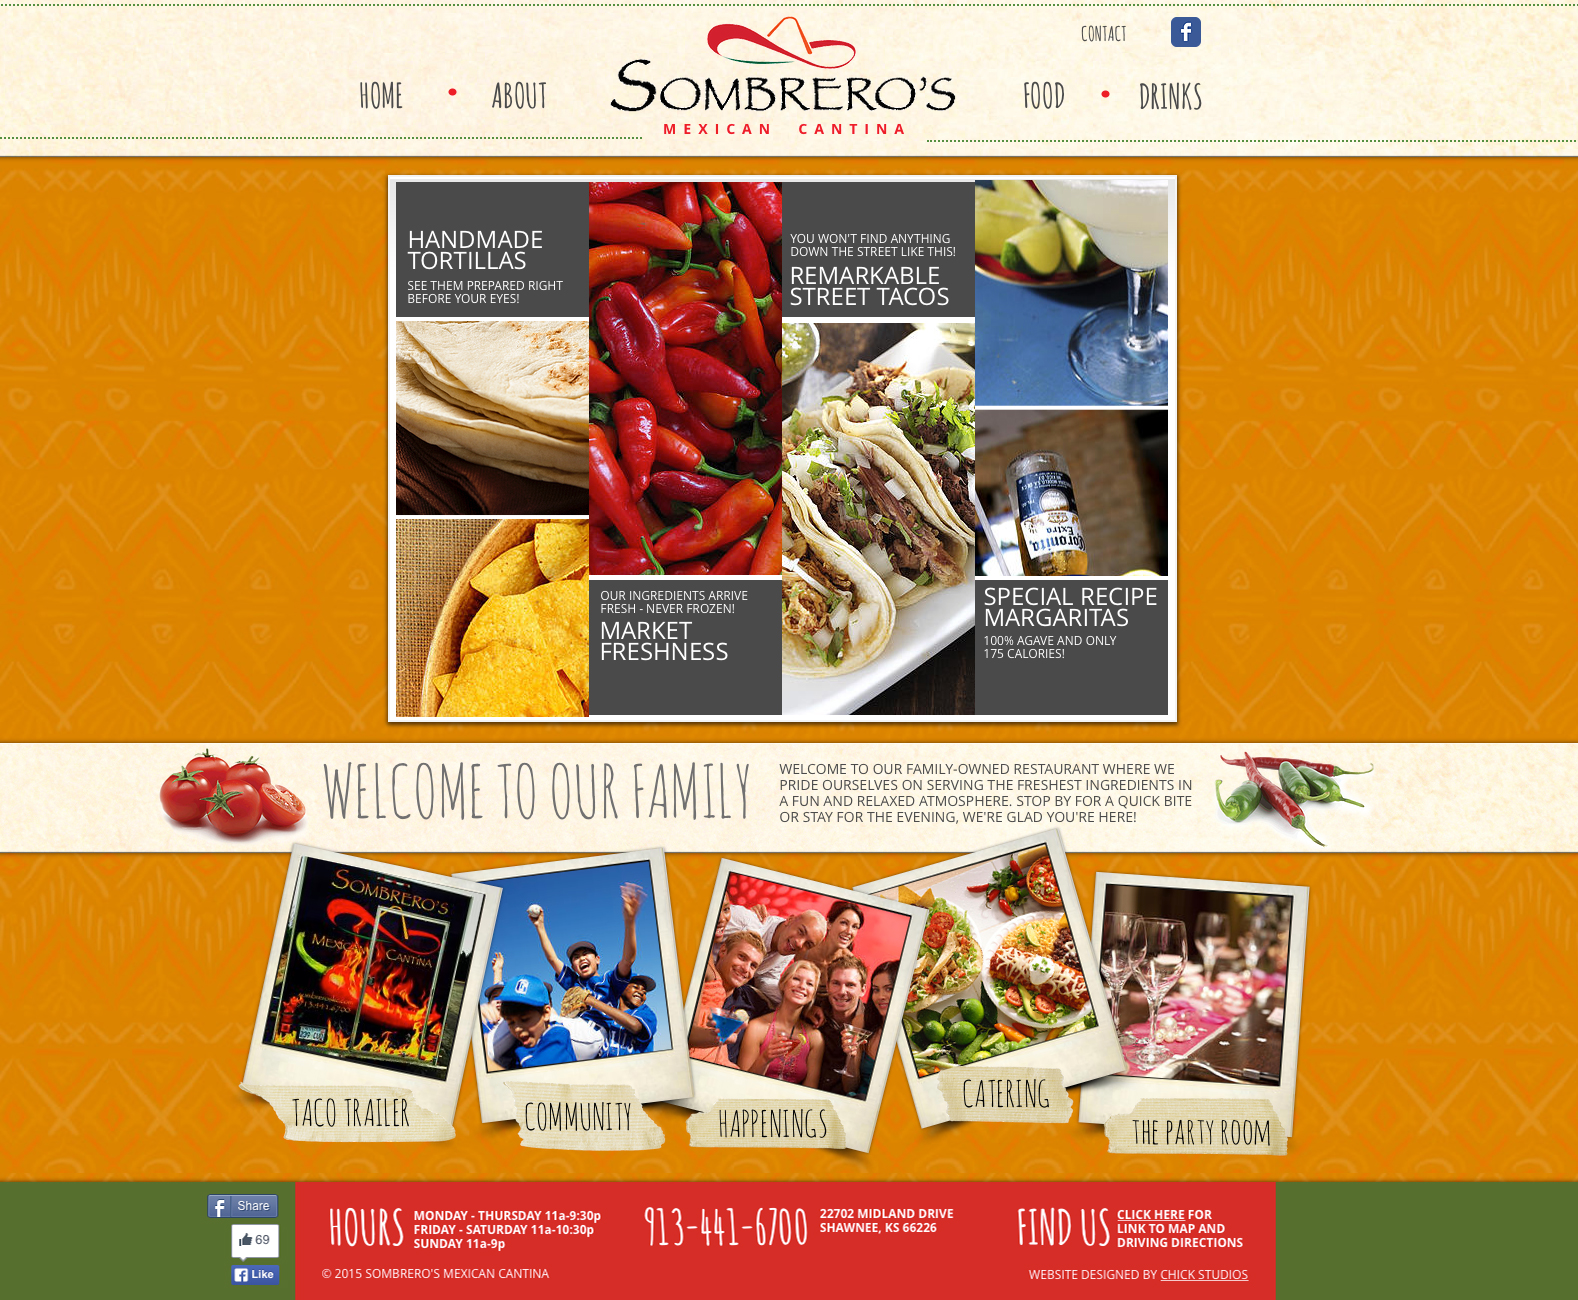 Sombrero's Mexican Cantina website